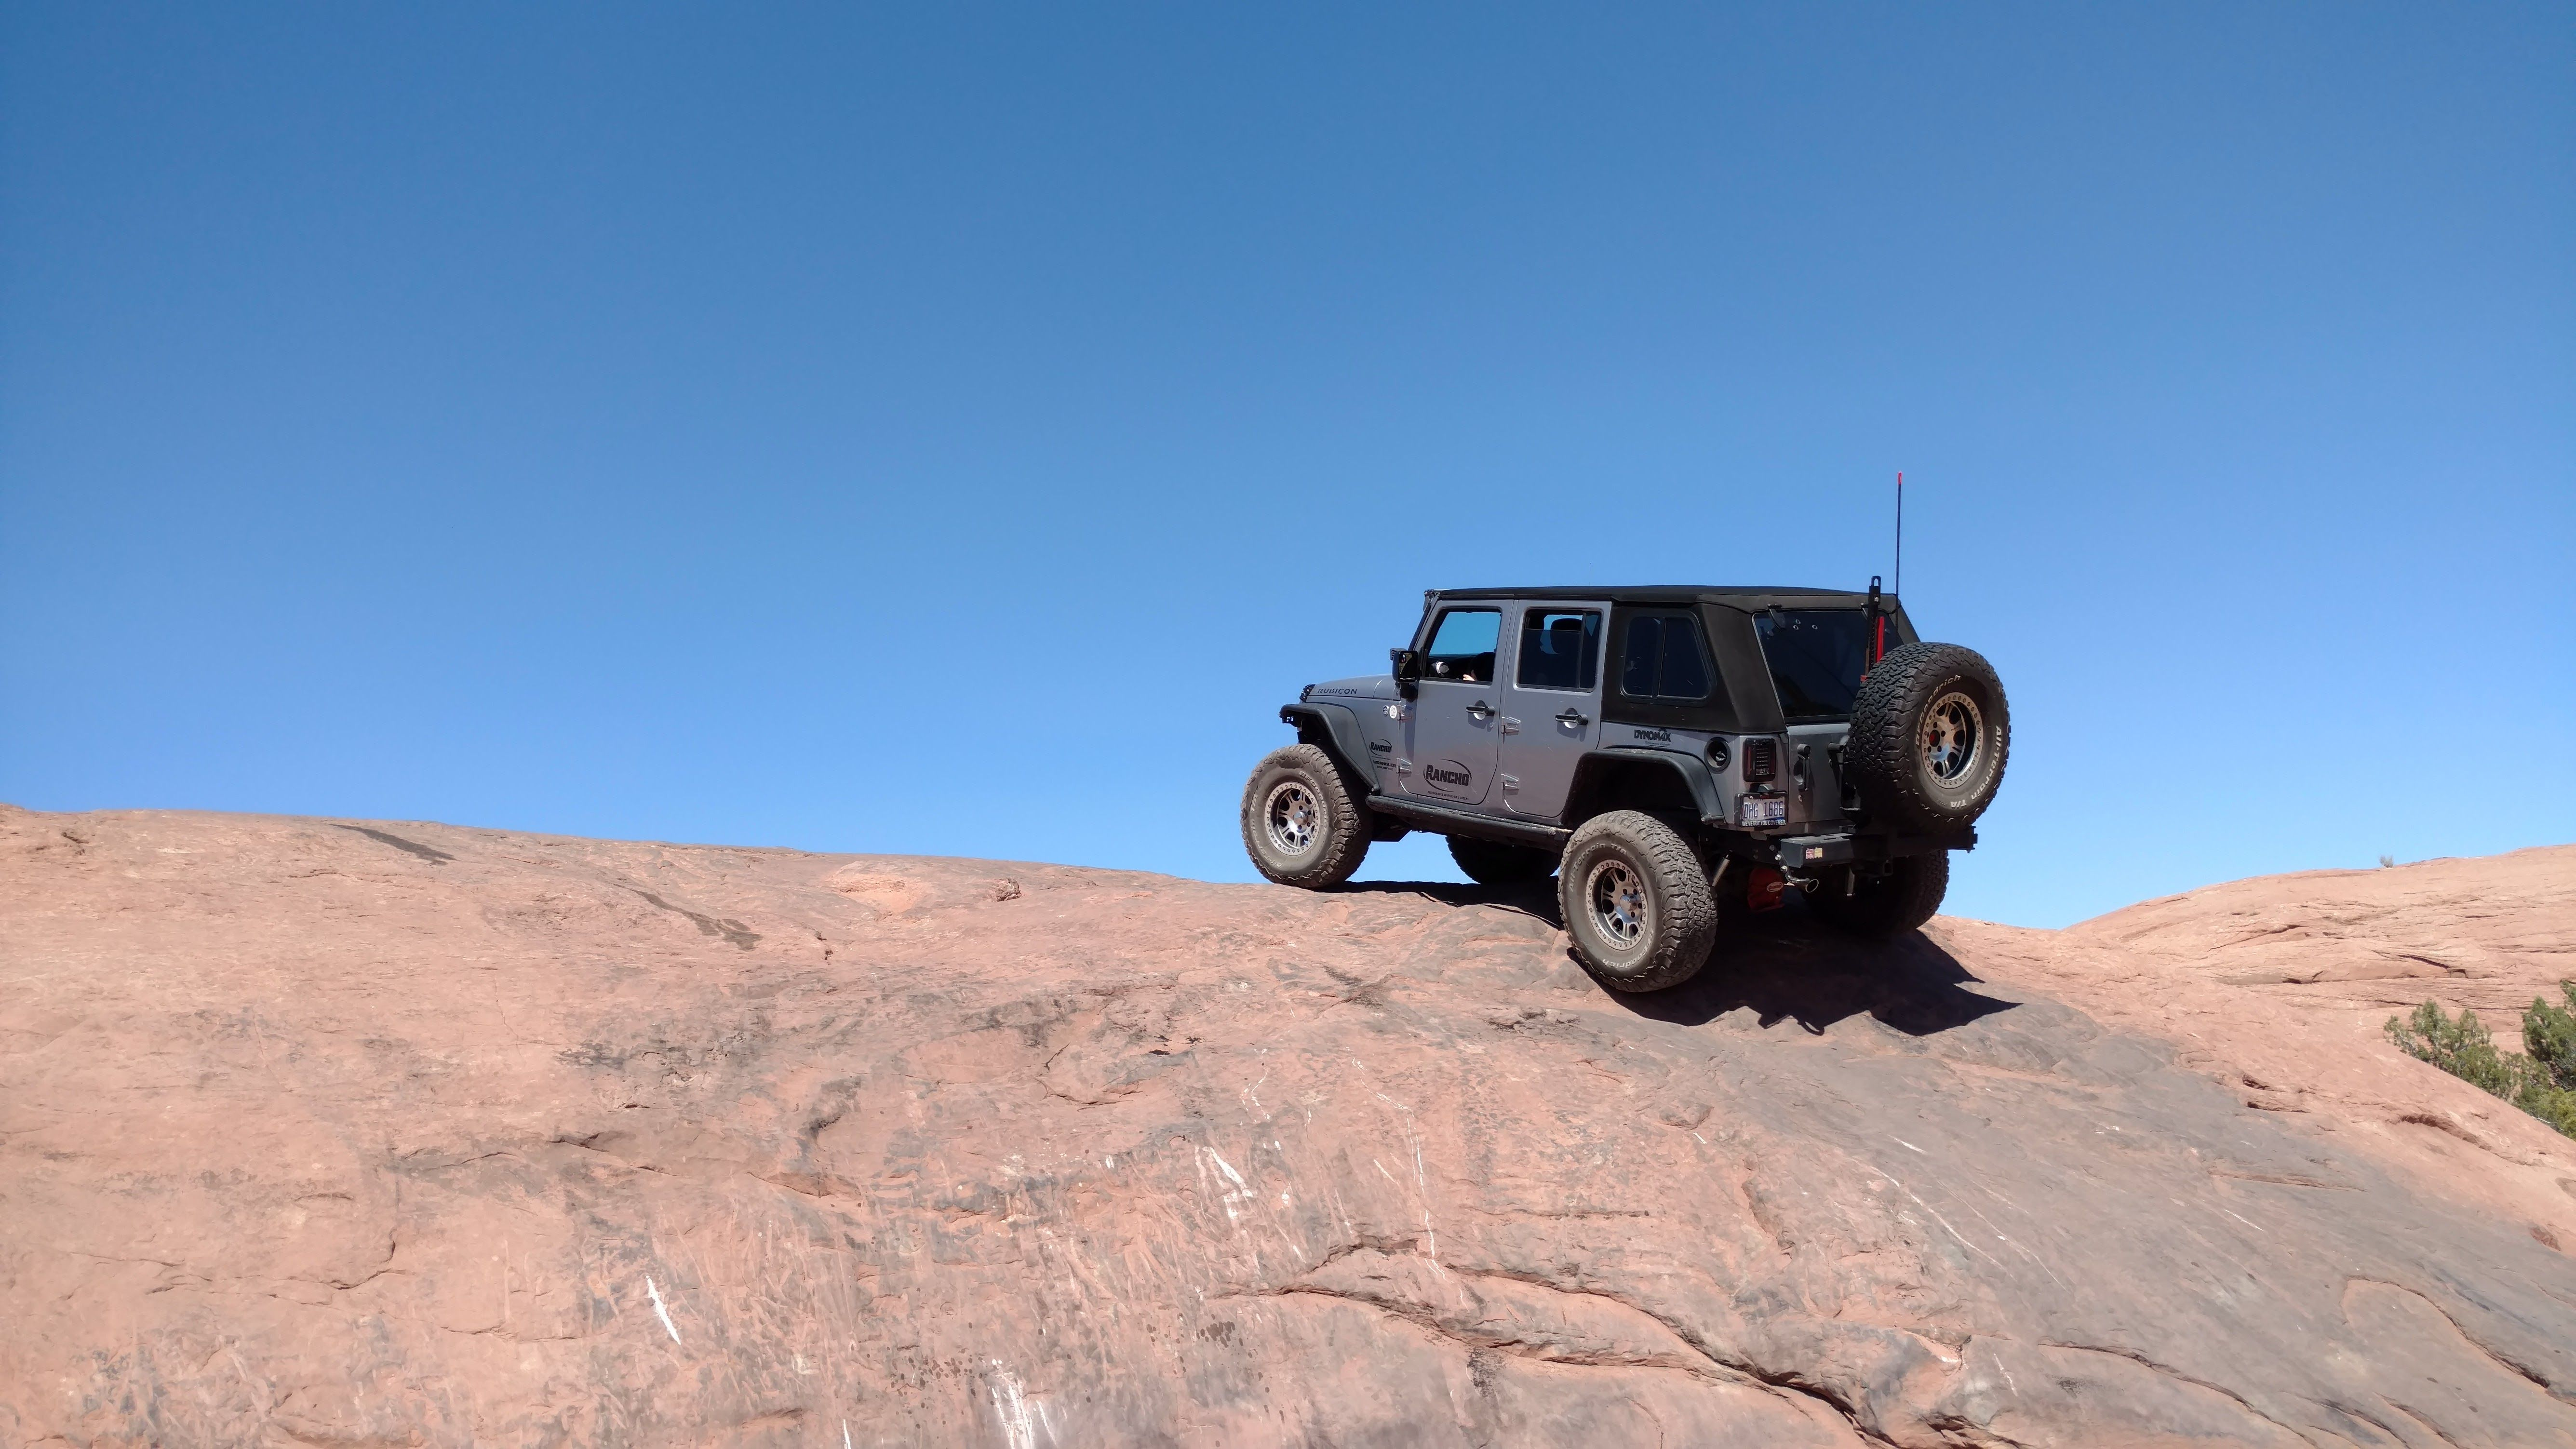 Pin By Rancho Suspension On Outdoors Monster Trucks Moab Trucks